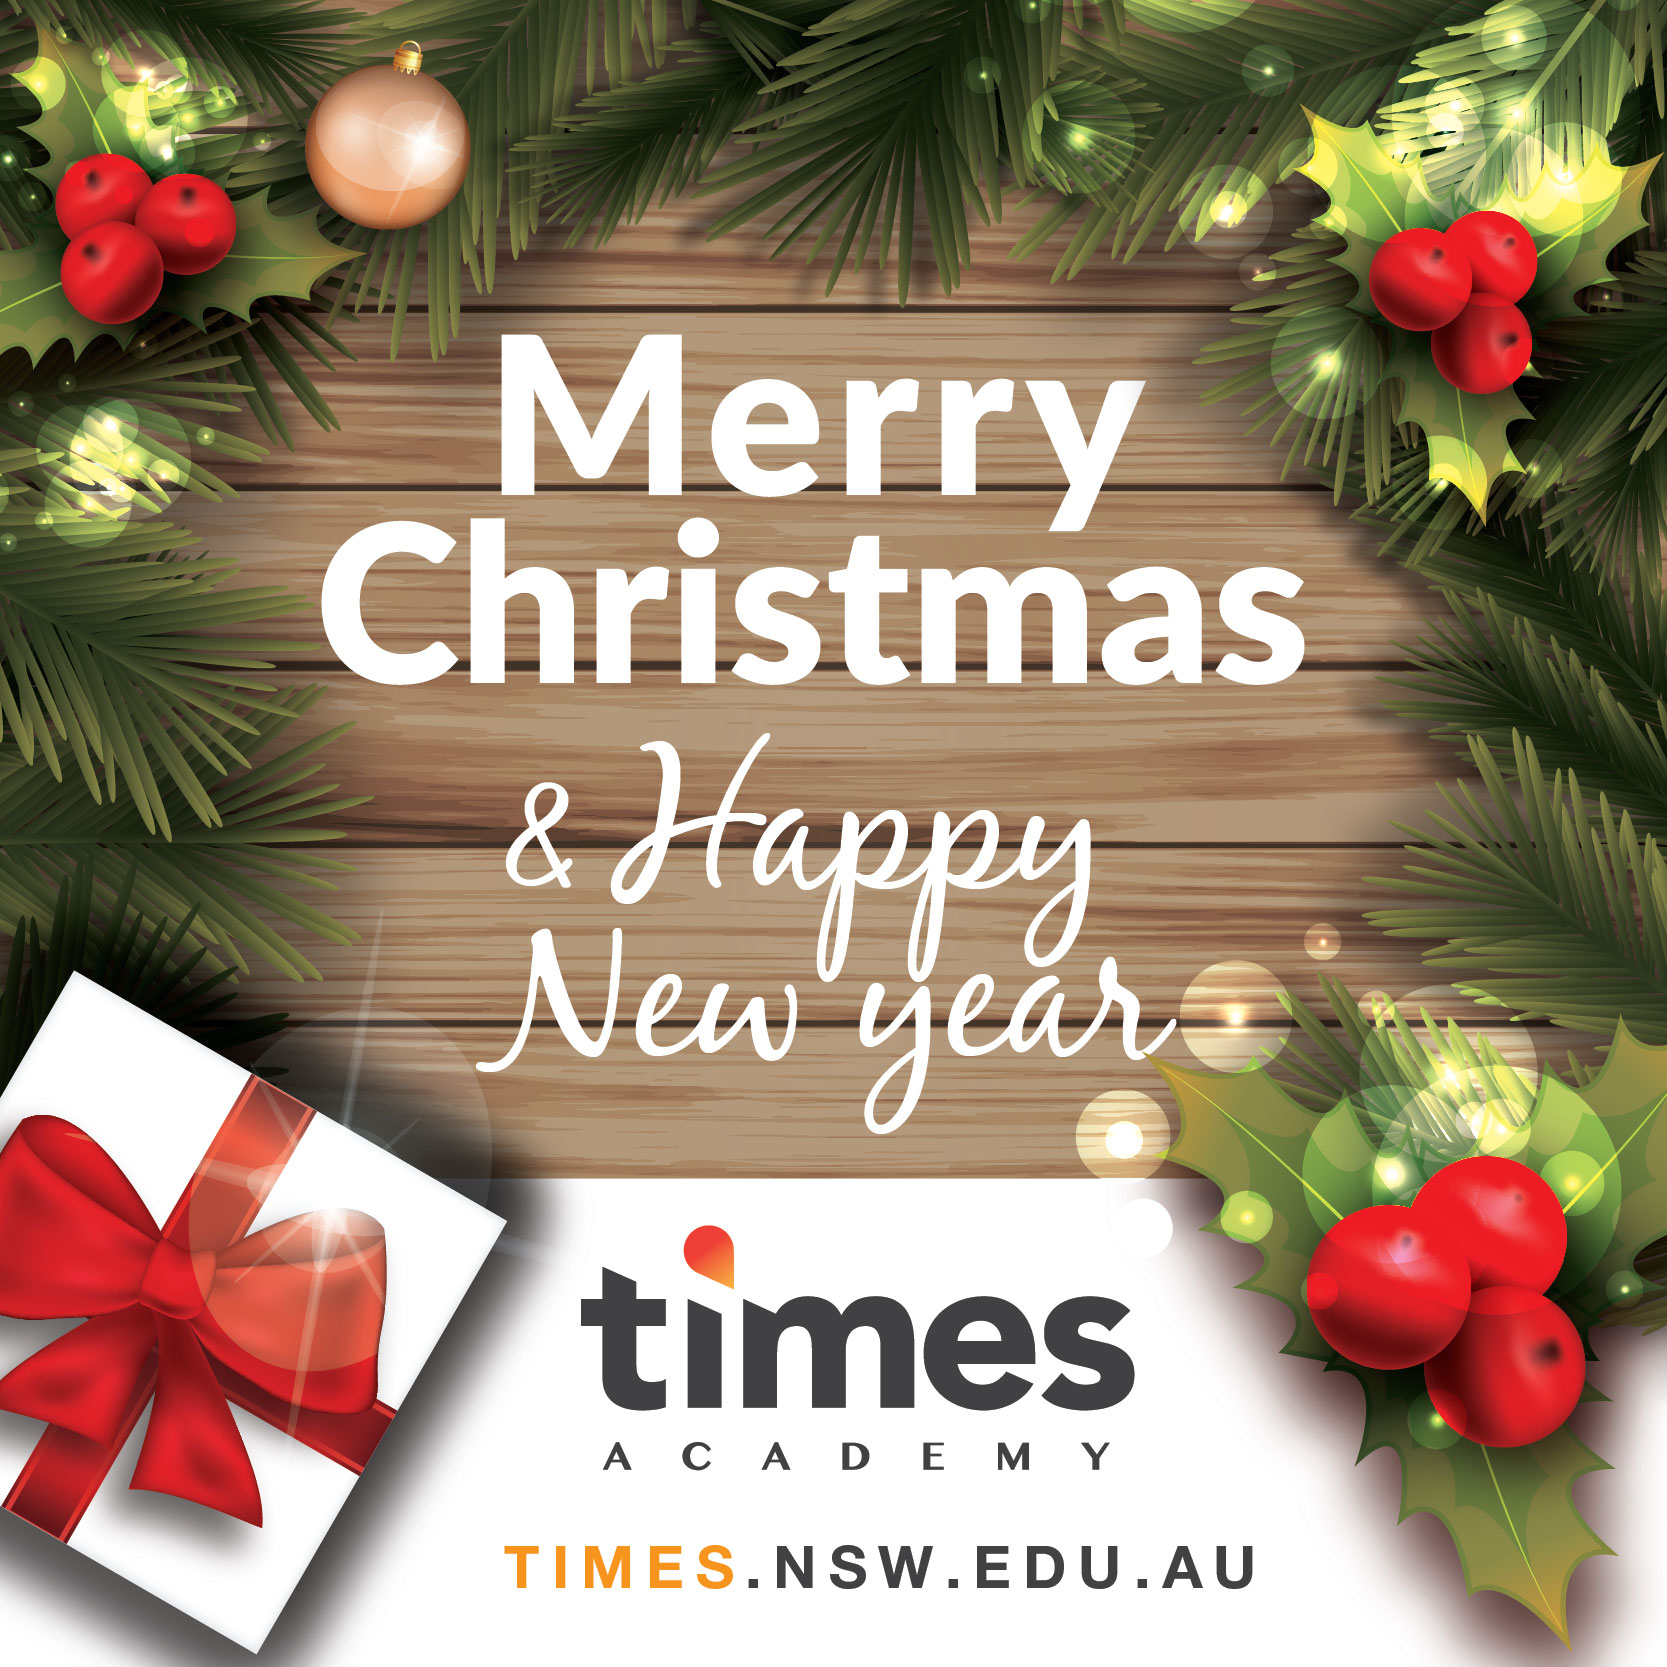 Times Academy wishes you a Merry Christmas and Happy New Year ...